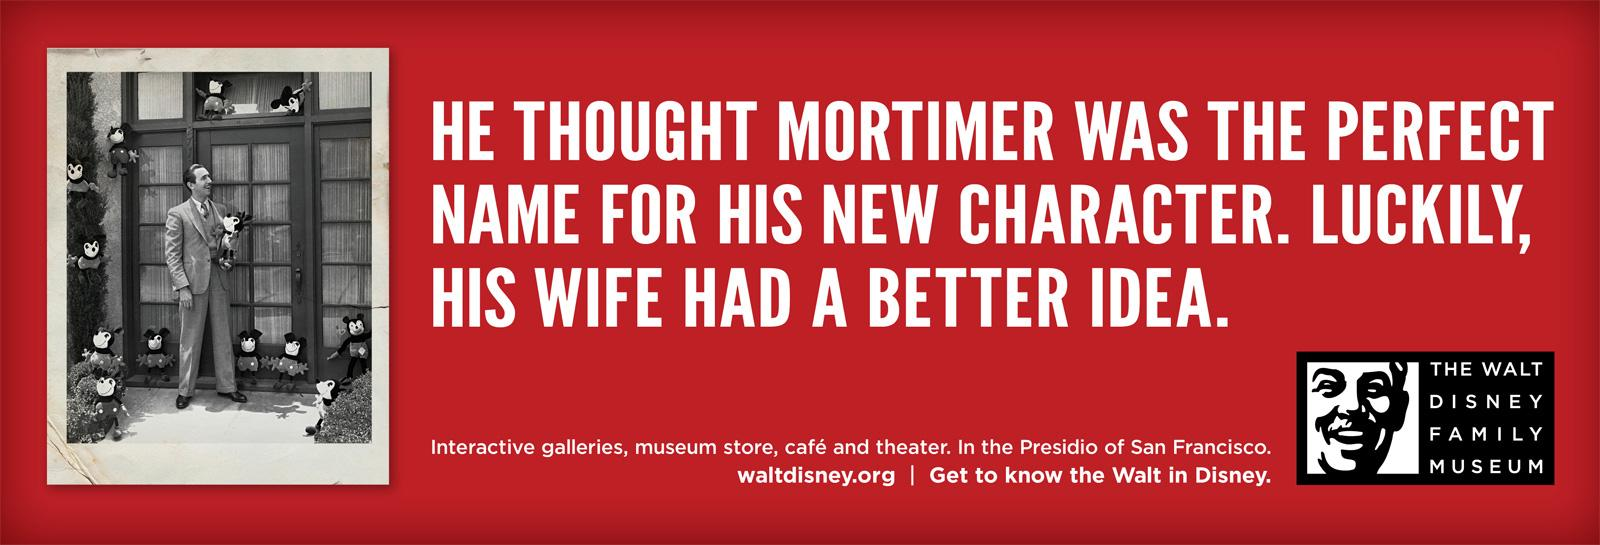 The Walt Disney Family Museum Print Ad -  Mortimer